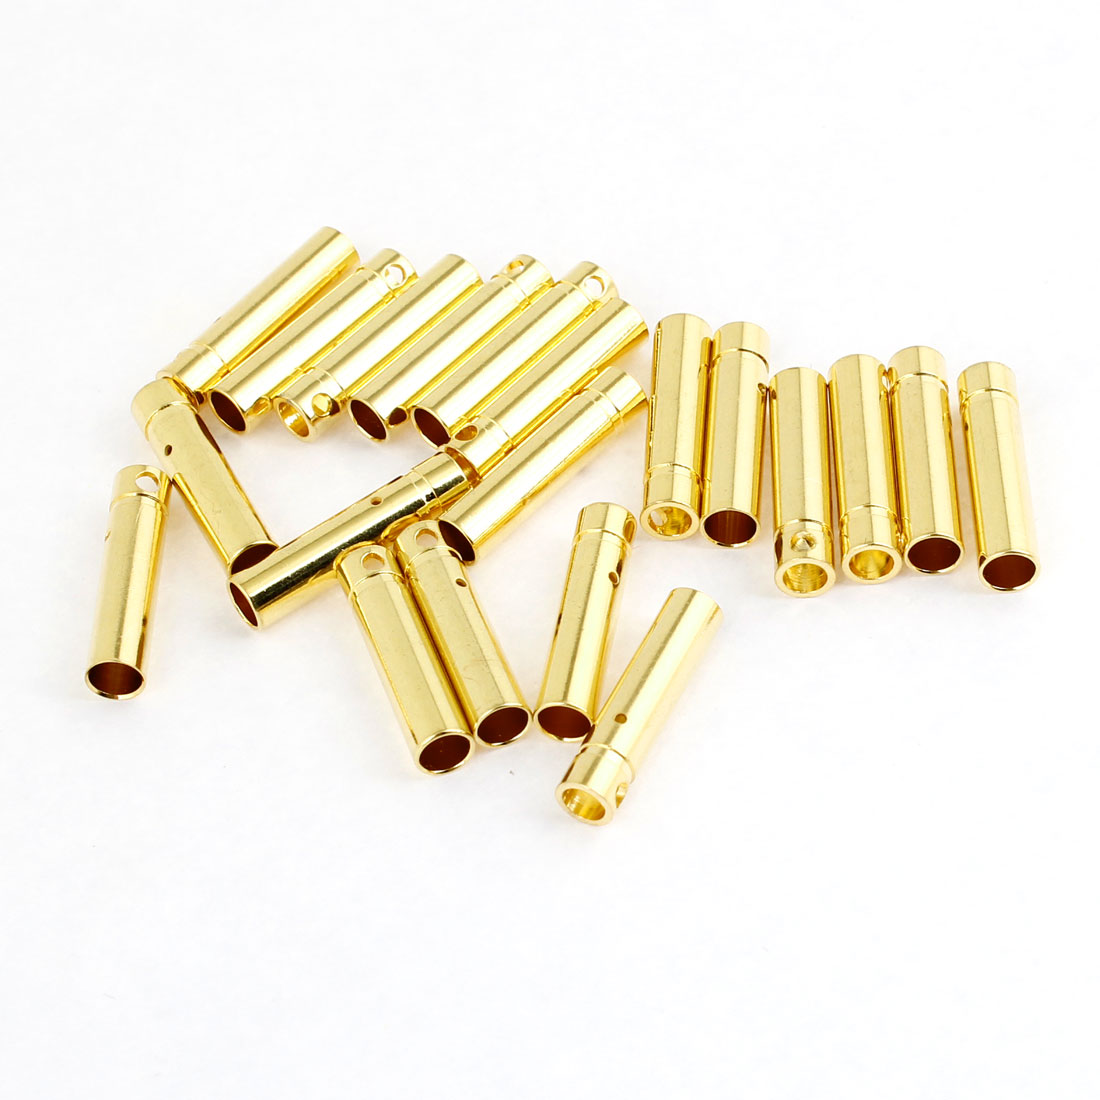 20 Pcs Female Socket Plug Connector Plug 4mm for RC Li-Po Battery